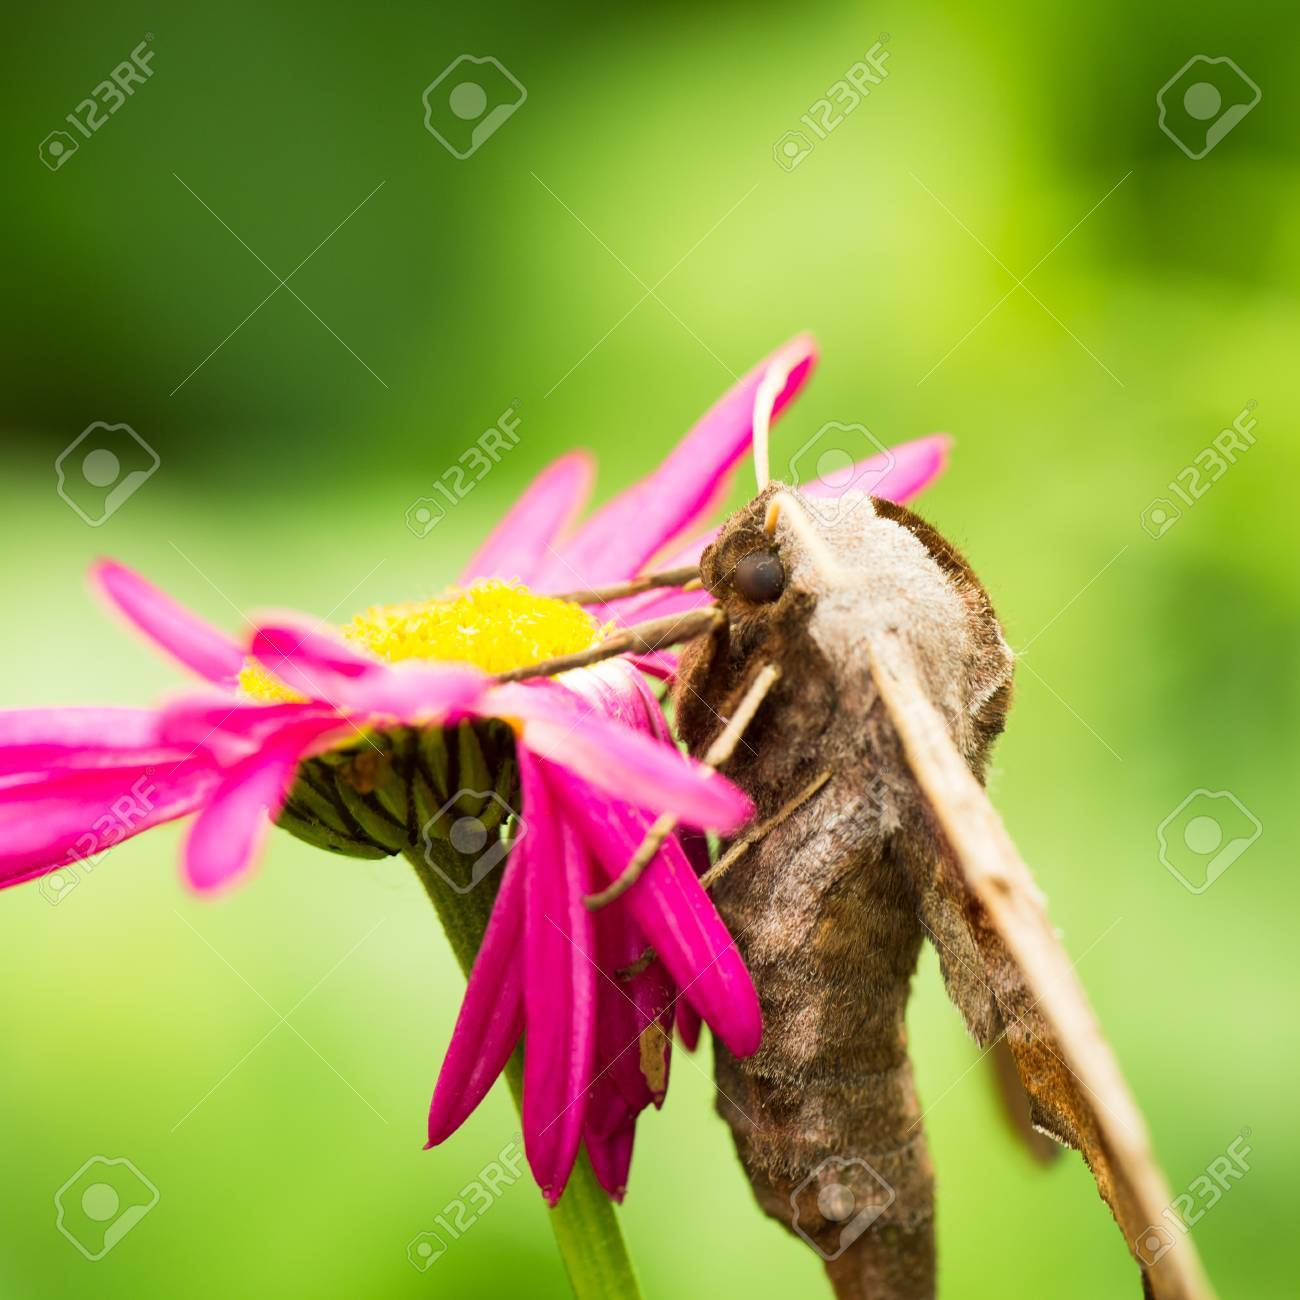 Giant Peacock Moth On A Pink Flower Stock Photo Picture And Royalty